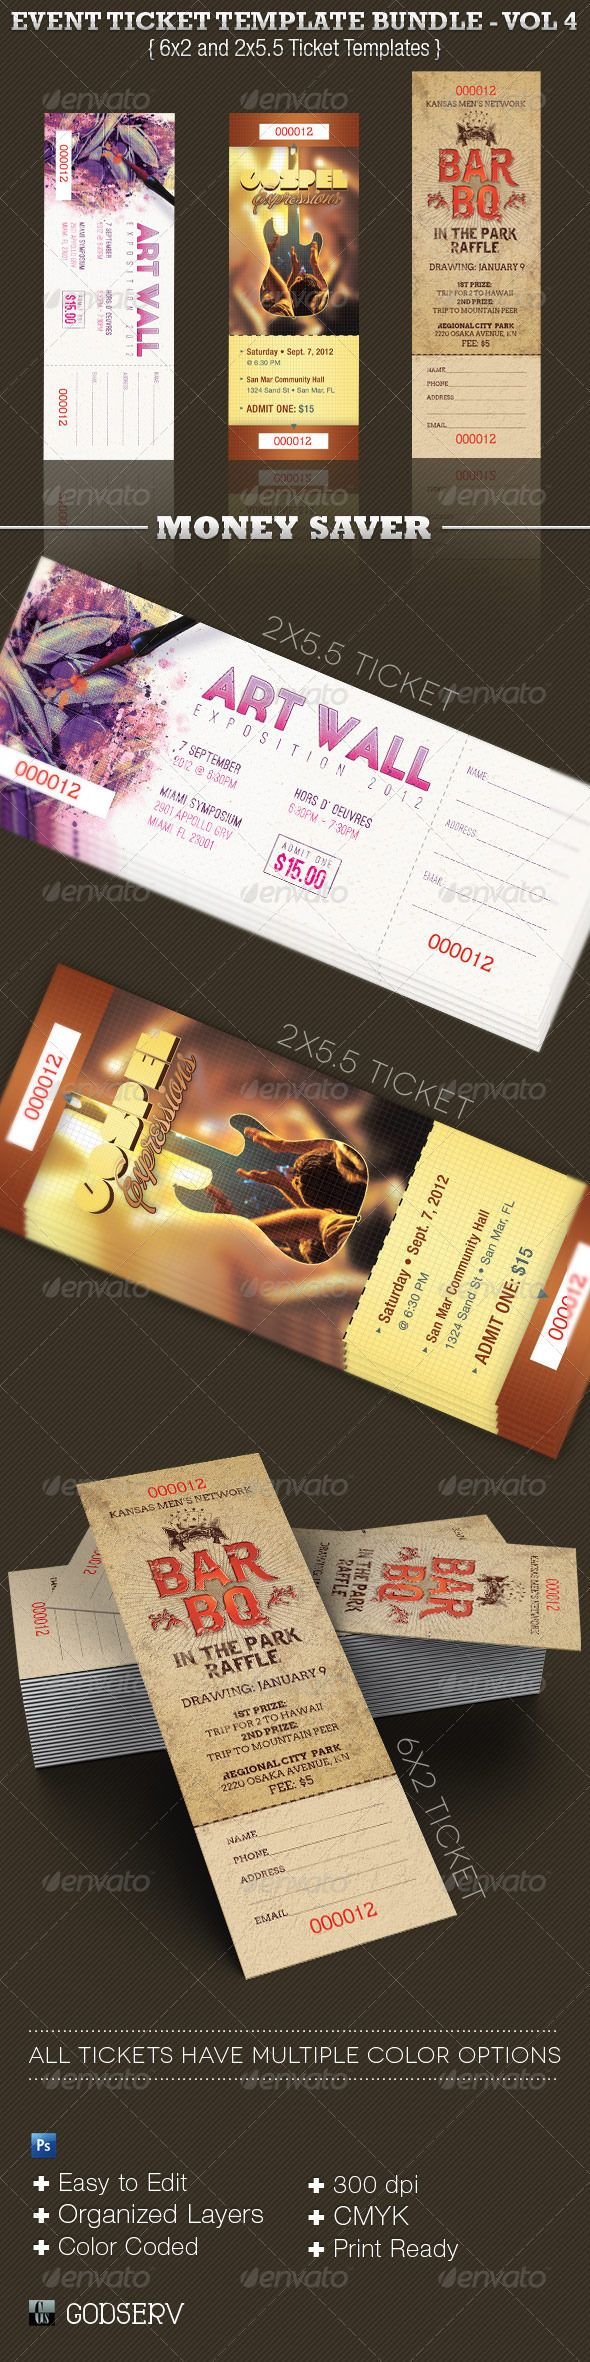 best ideas about raffle ticket printing baby event ticket template bundle volume 4 12 00